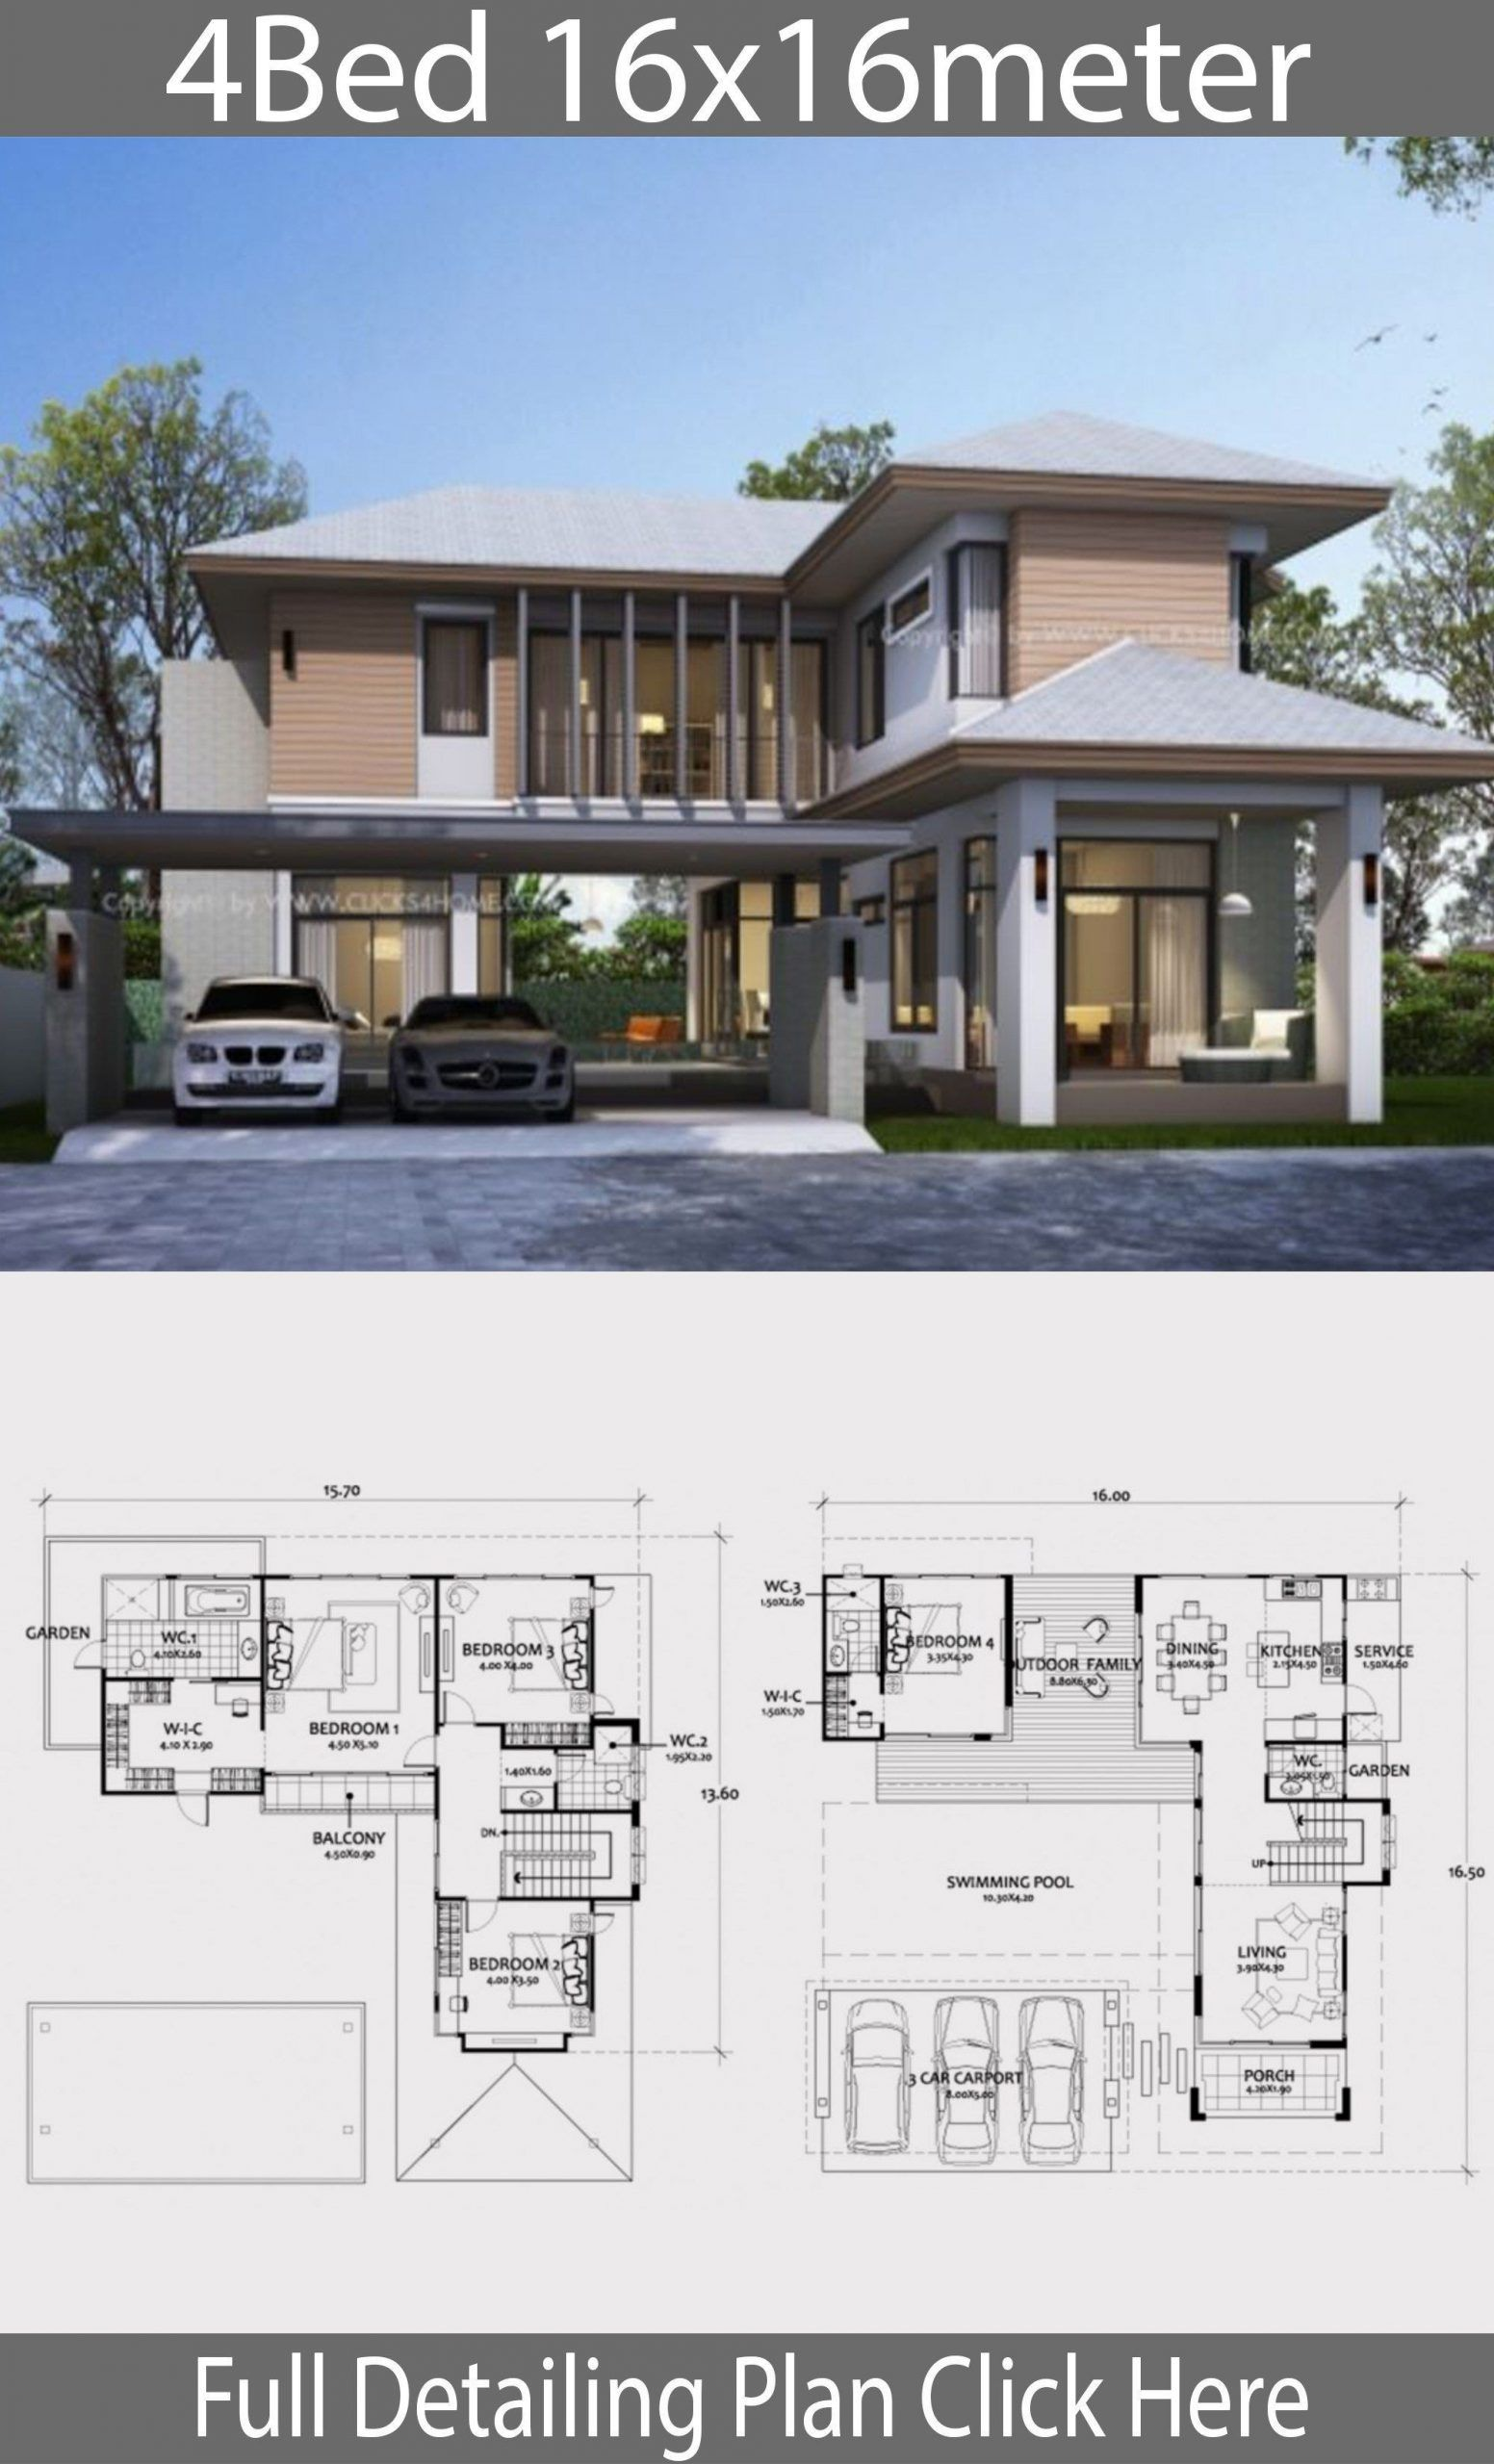 Beautiful House Designs And Plans Beautiful House Designs And Plans 2020 Home Design Pla In 2021 Modern Style House Plans Beautiful House Plans Bungalow House Design